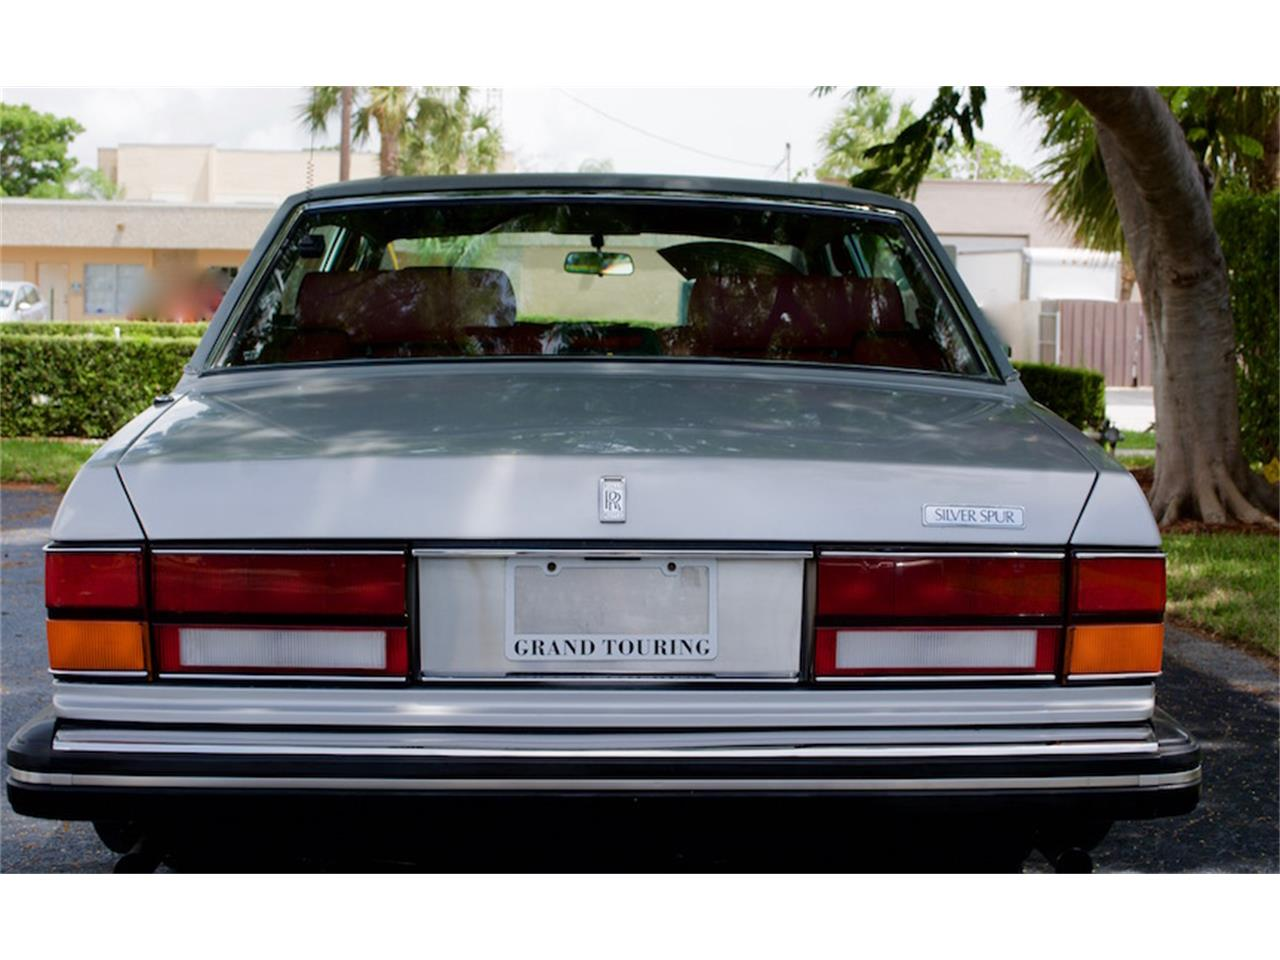 Large Picture of '86 Rolls-Royce Silver Spur located in Florida Offered by Show Cars of Boca Raton - M883